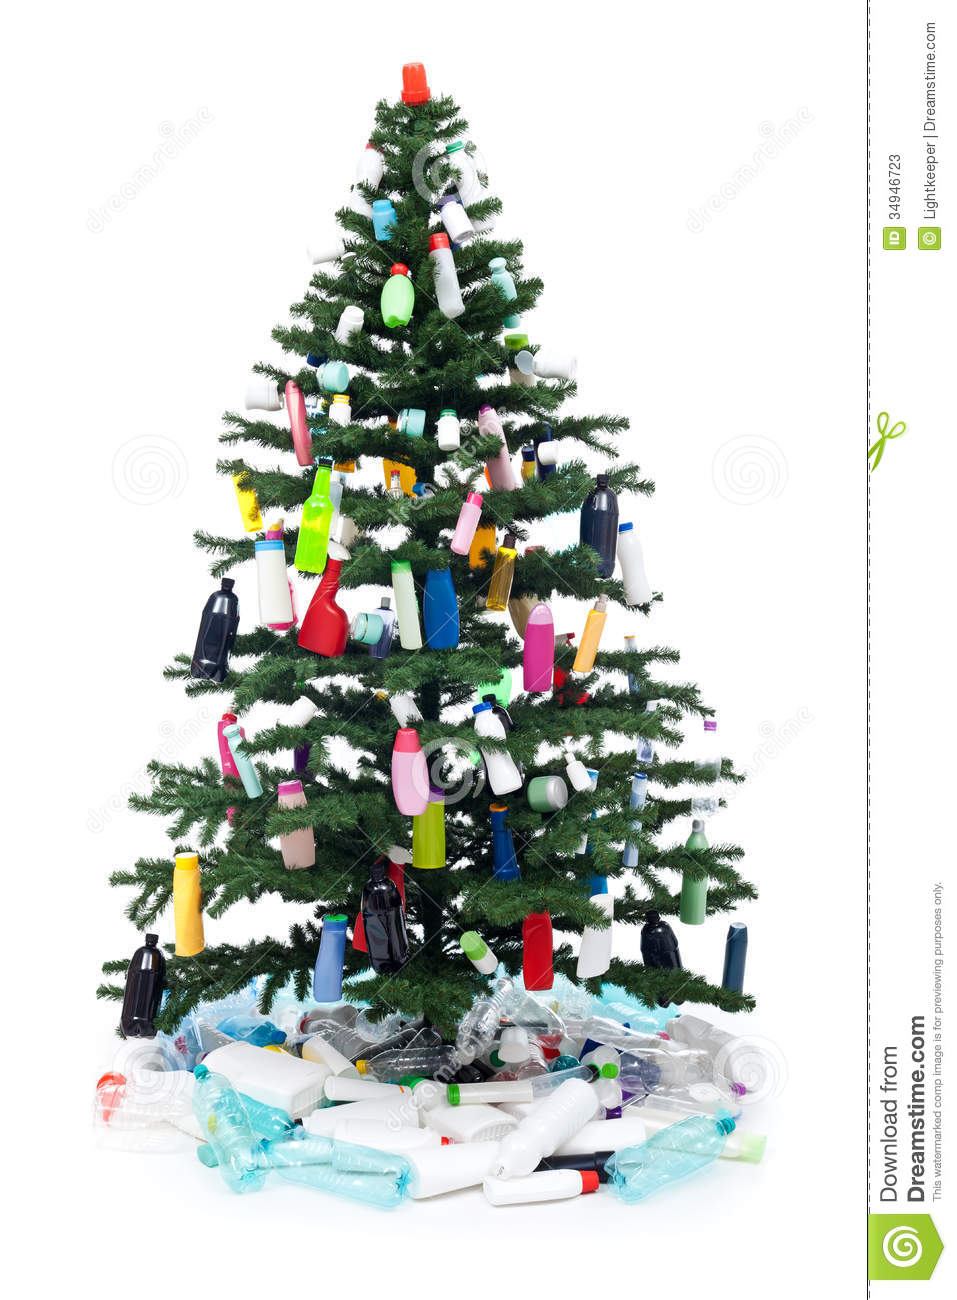 Plastic Bottles Waste Decorating A Christmas Tree Stock